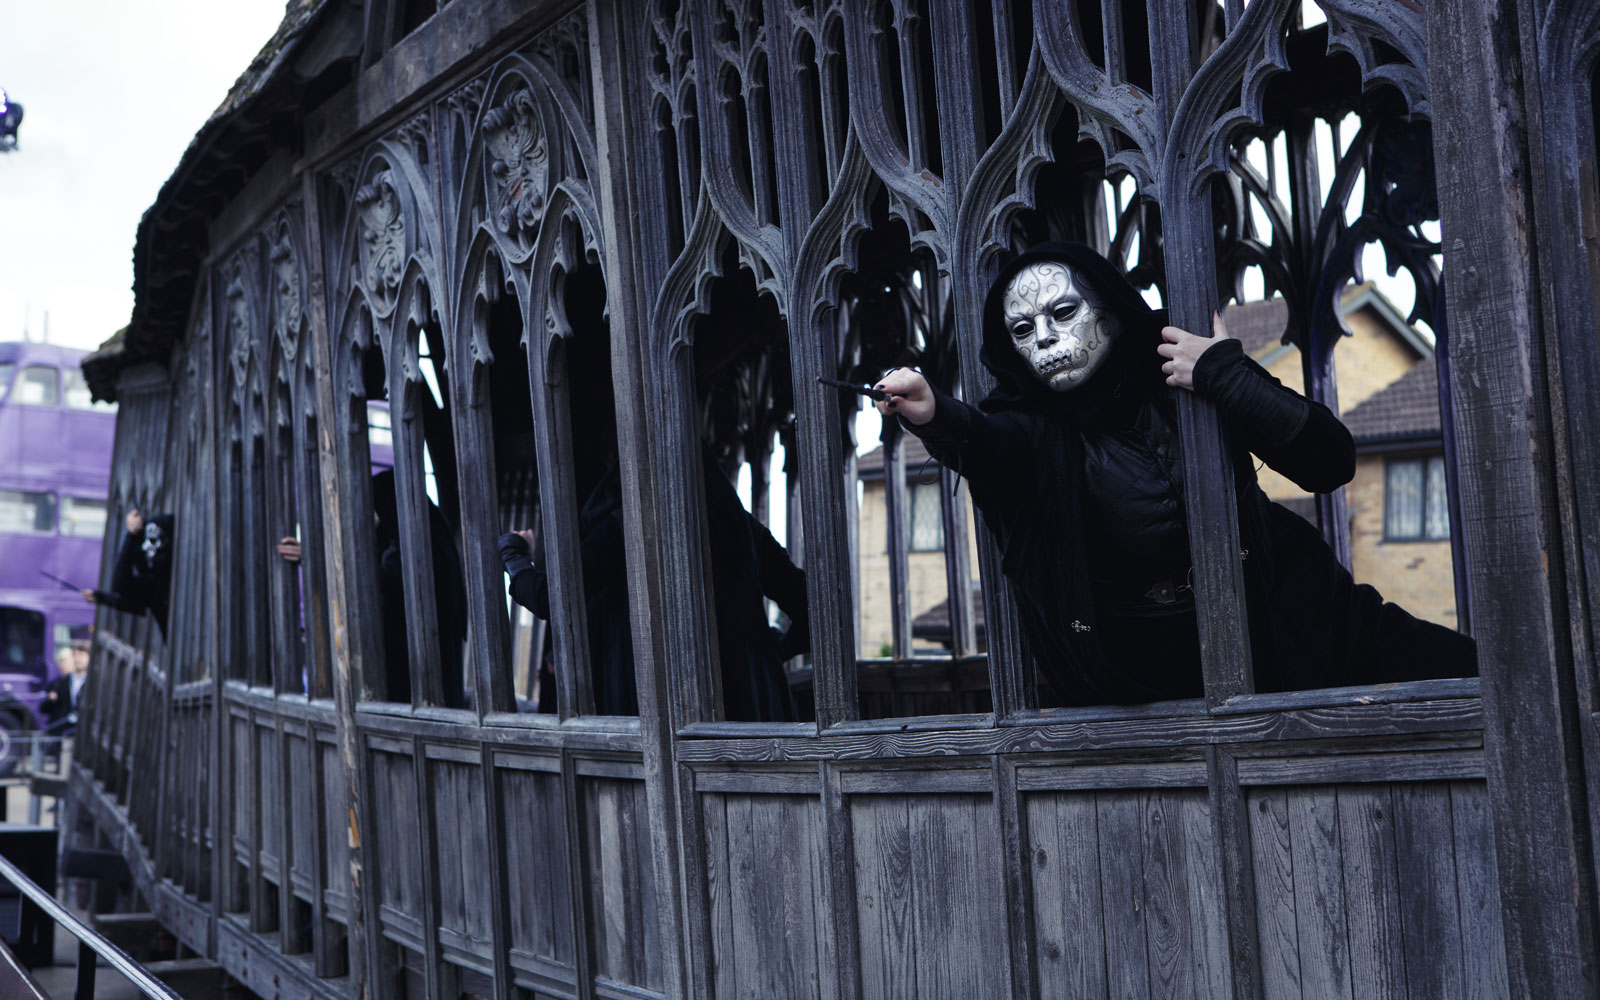 Get up close with Death Eaters during the Dark Arts tour offered in the fall at the Warner Brothers Studio Tour London—The Making of Harry Potter.